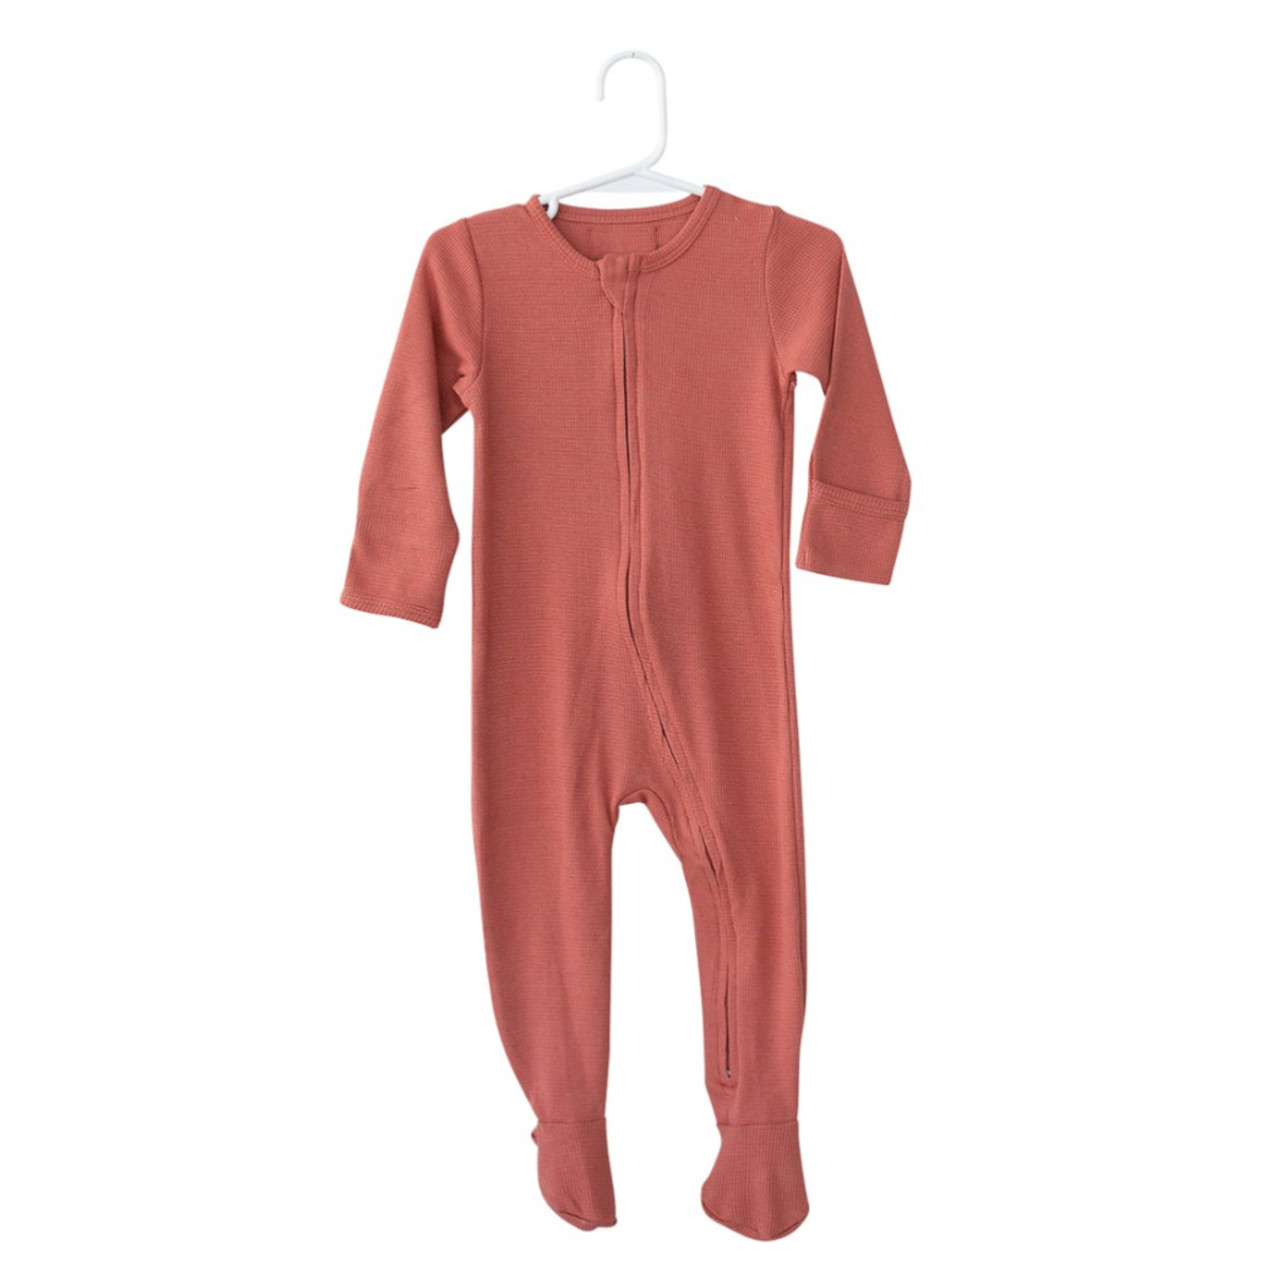 db78916ccc45 Organic Thermal Zip Footed Romper